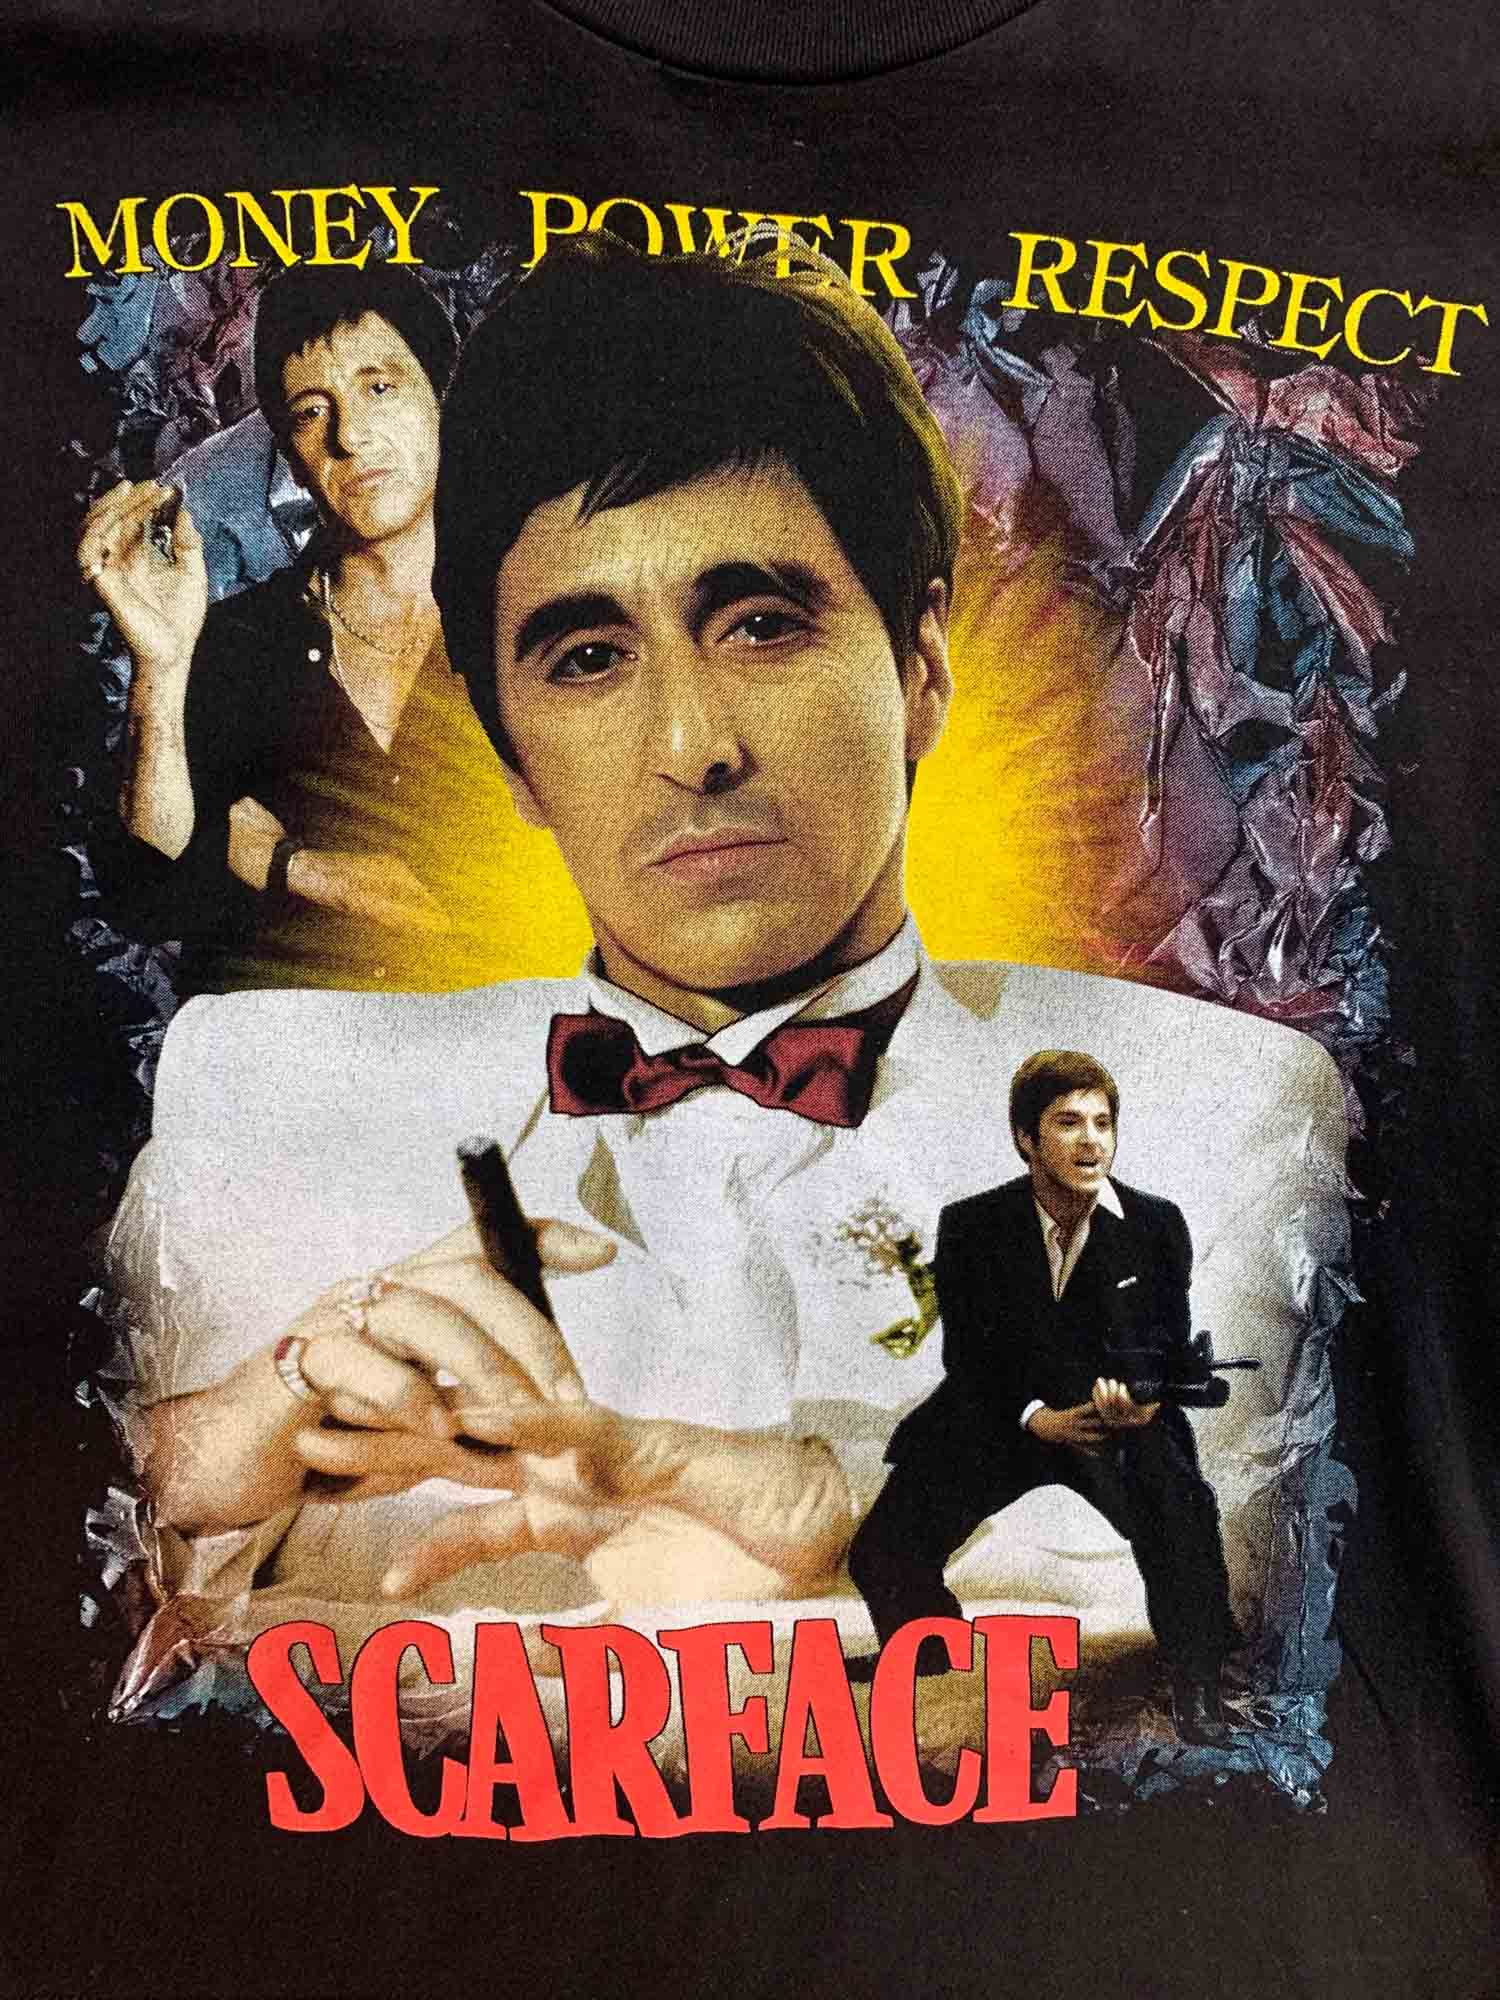 SCARFACE 'MONEY,POWER,RESPECT' TEE